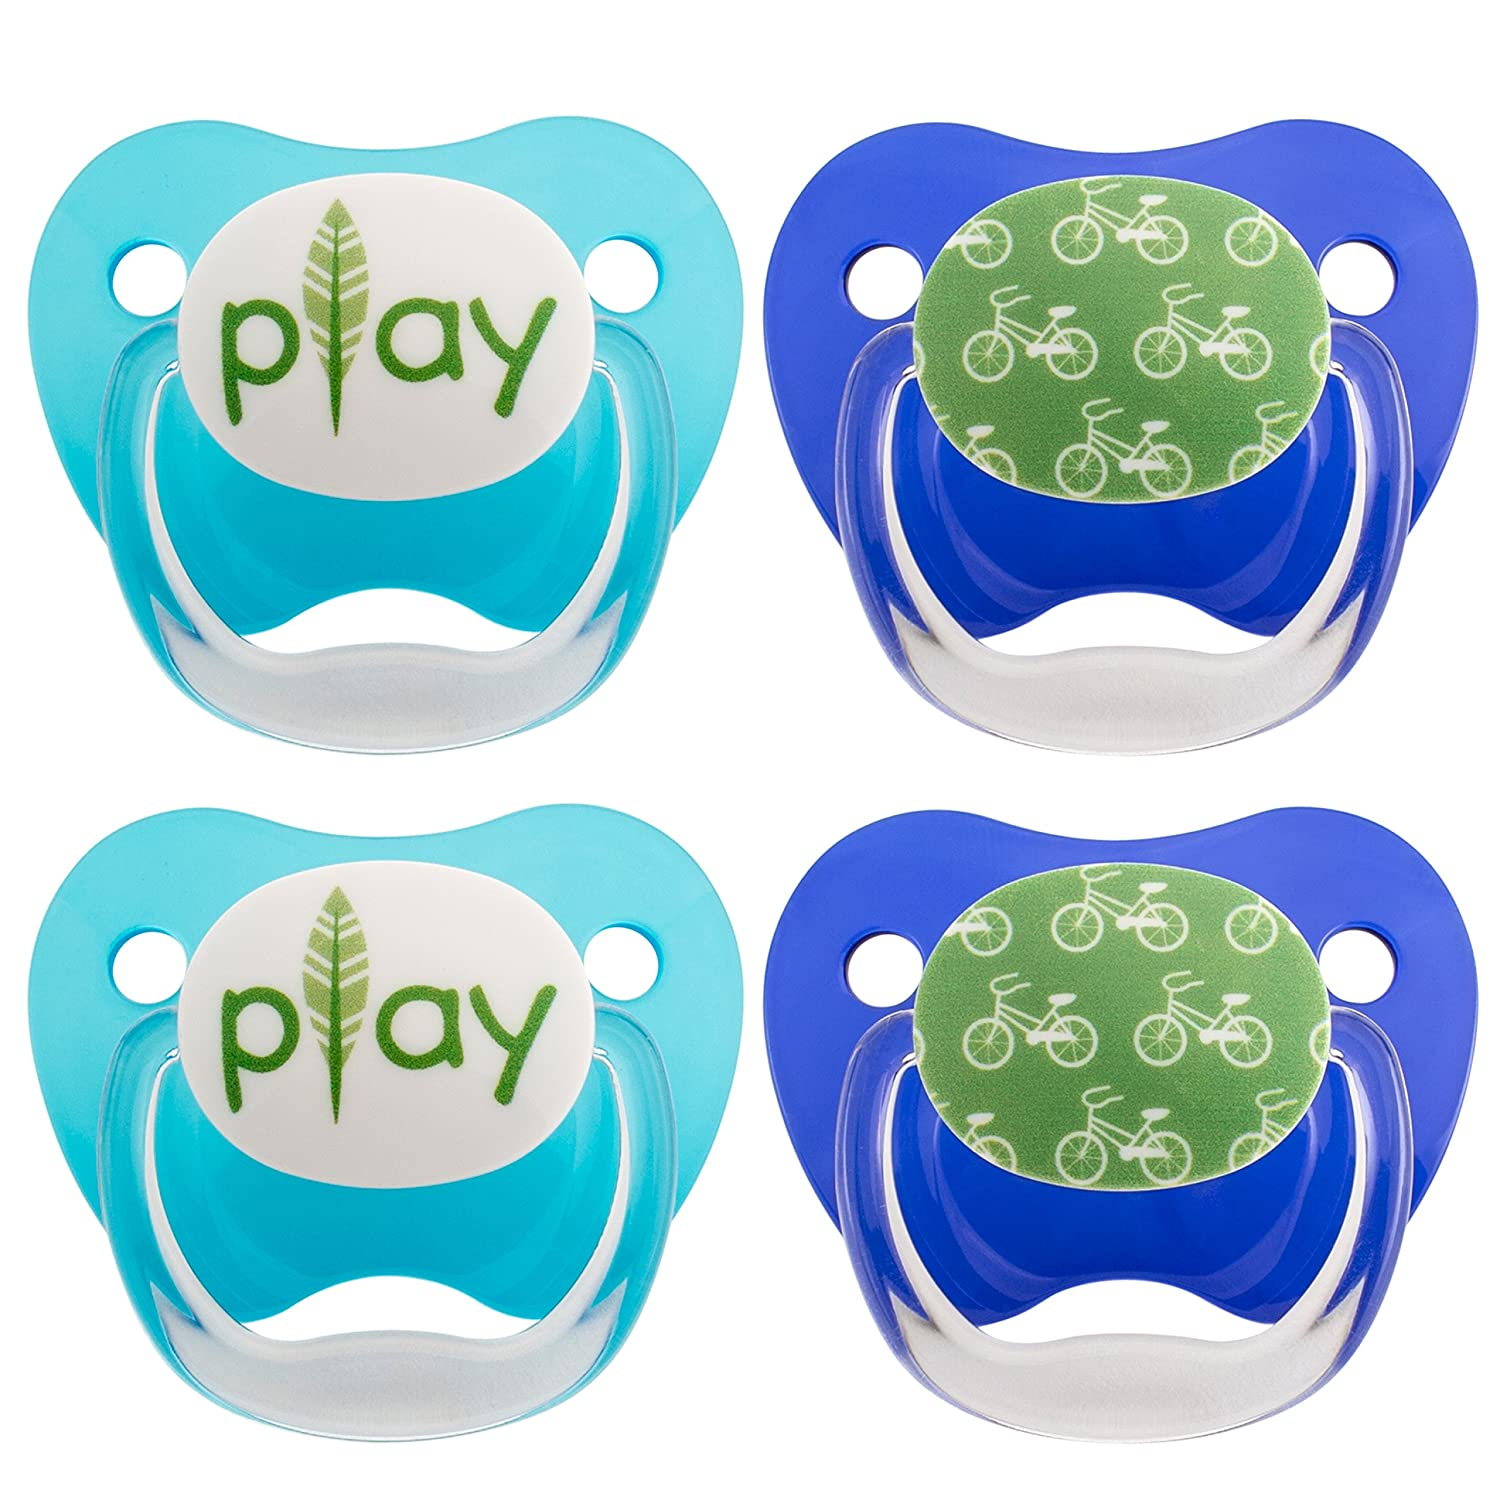 Dr. Brown's Classic Prevent Pacifier, Wild Blue, 0-6 Months+, 4 Count